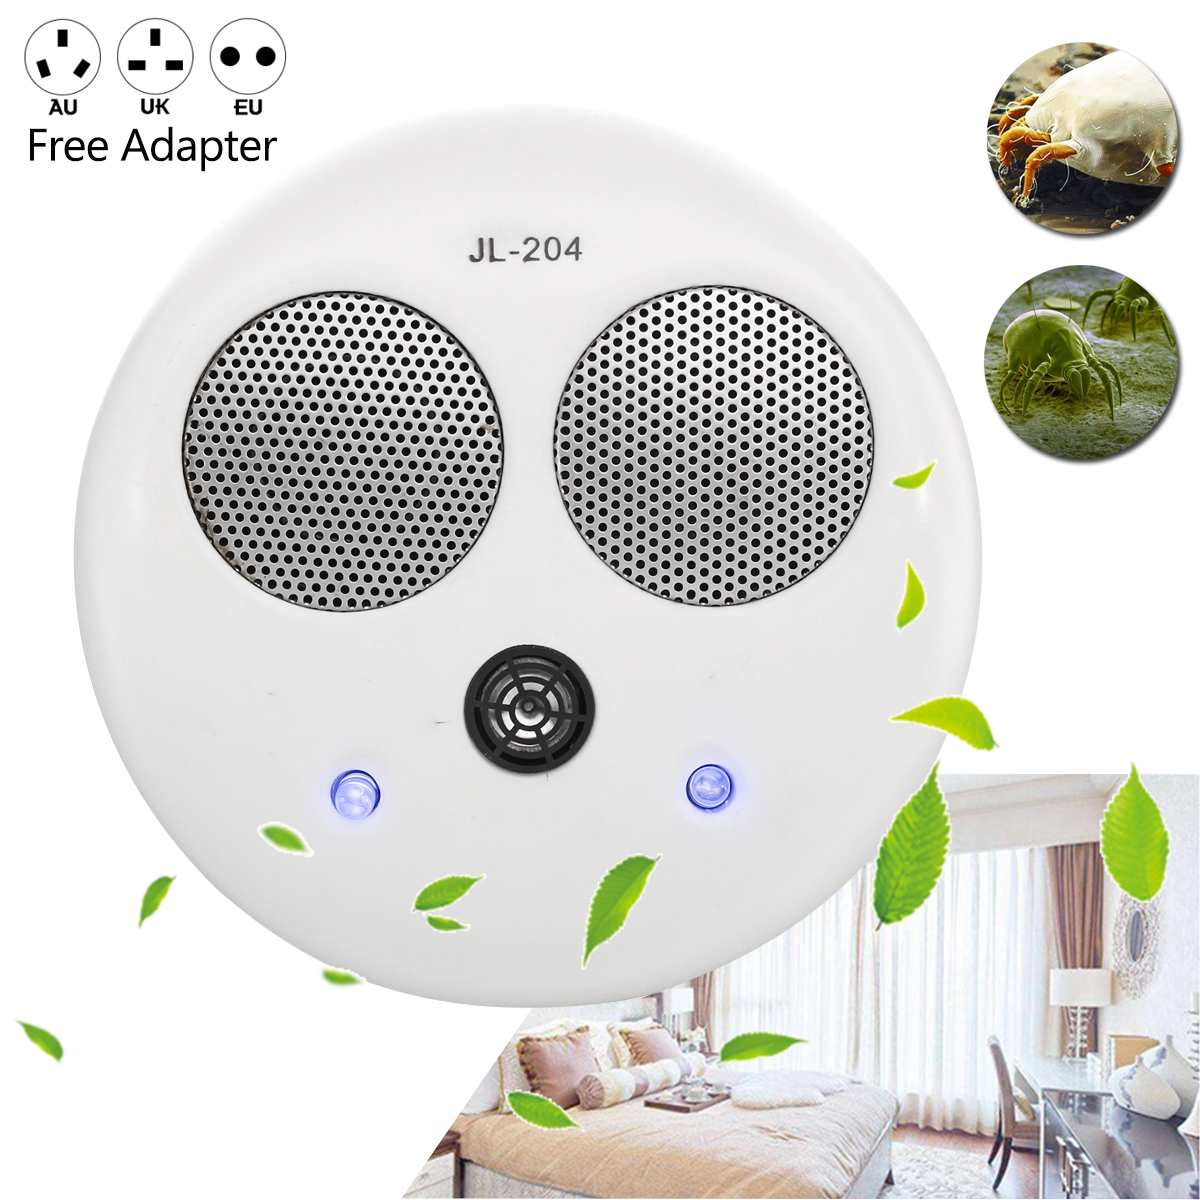 Mini Electronic Ultrasonic Cleaner Dust Mite Controller Cleaner Killer Physical Anti 80 Bed Mites Killing Device Coverage HomeMini Electronic Ultrasonic Cleaner Dust Mite Controller Cleaner Killer Physical Anti 80 Bed Mites Killing Device Coverage Home